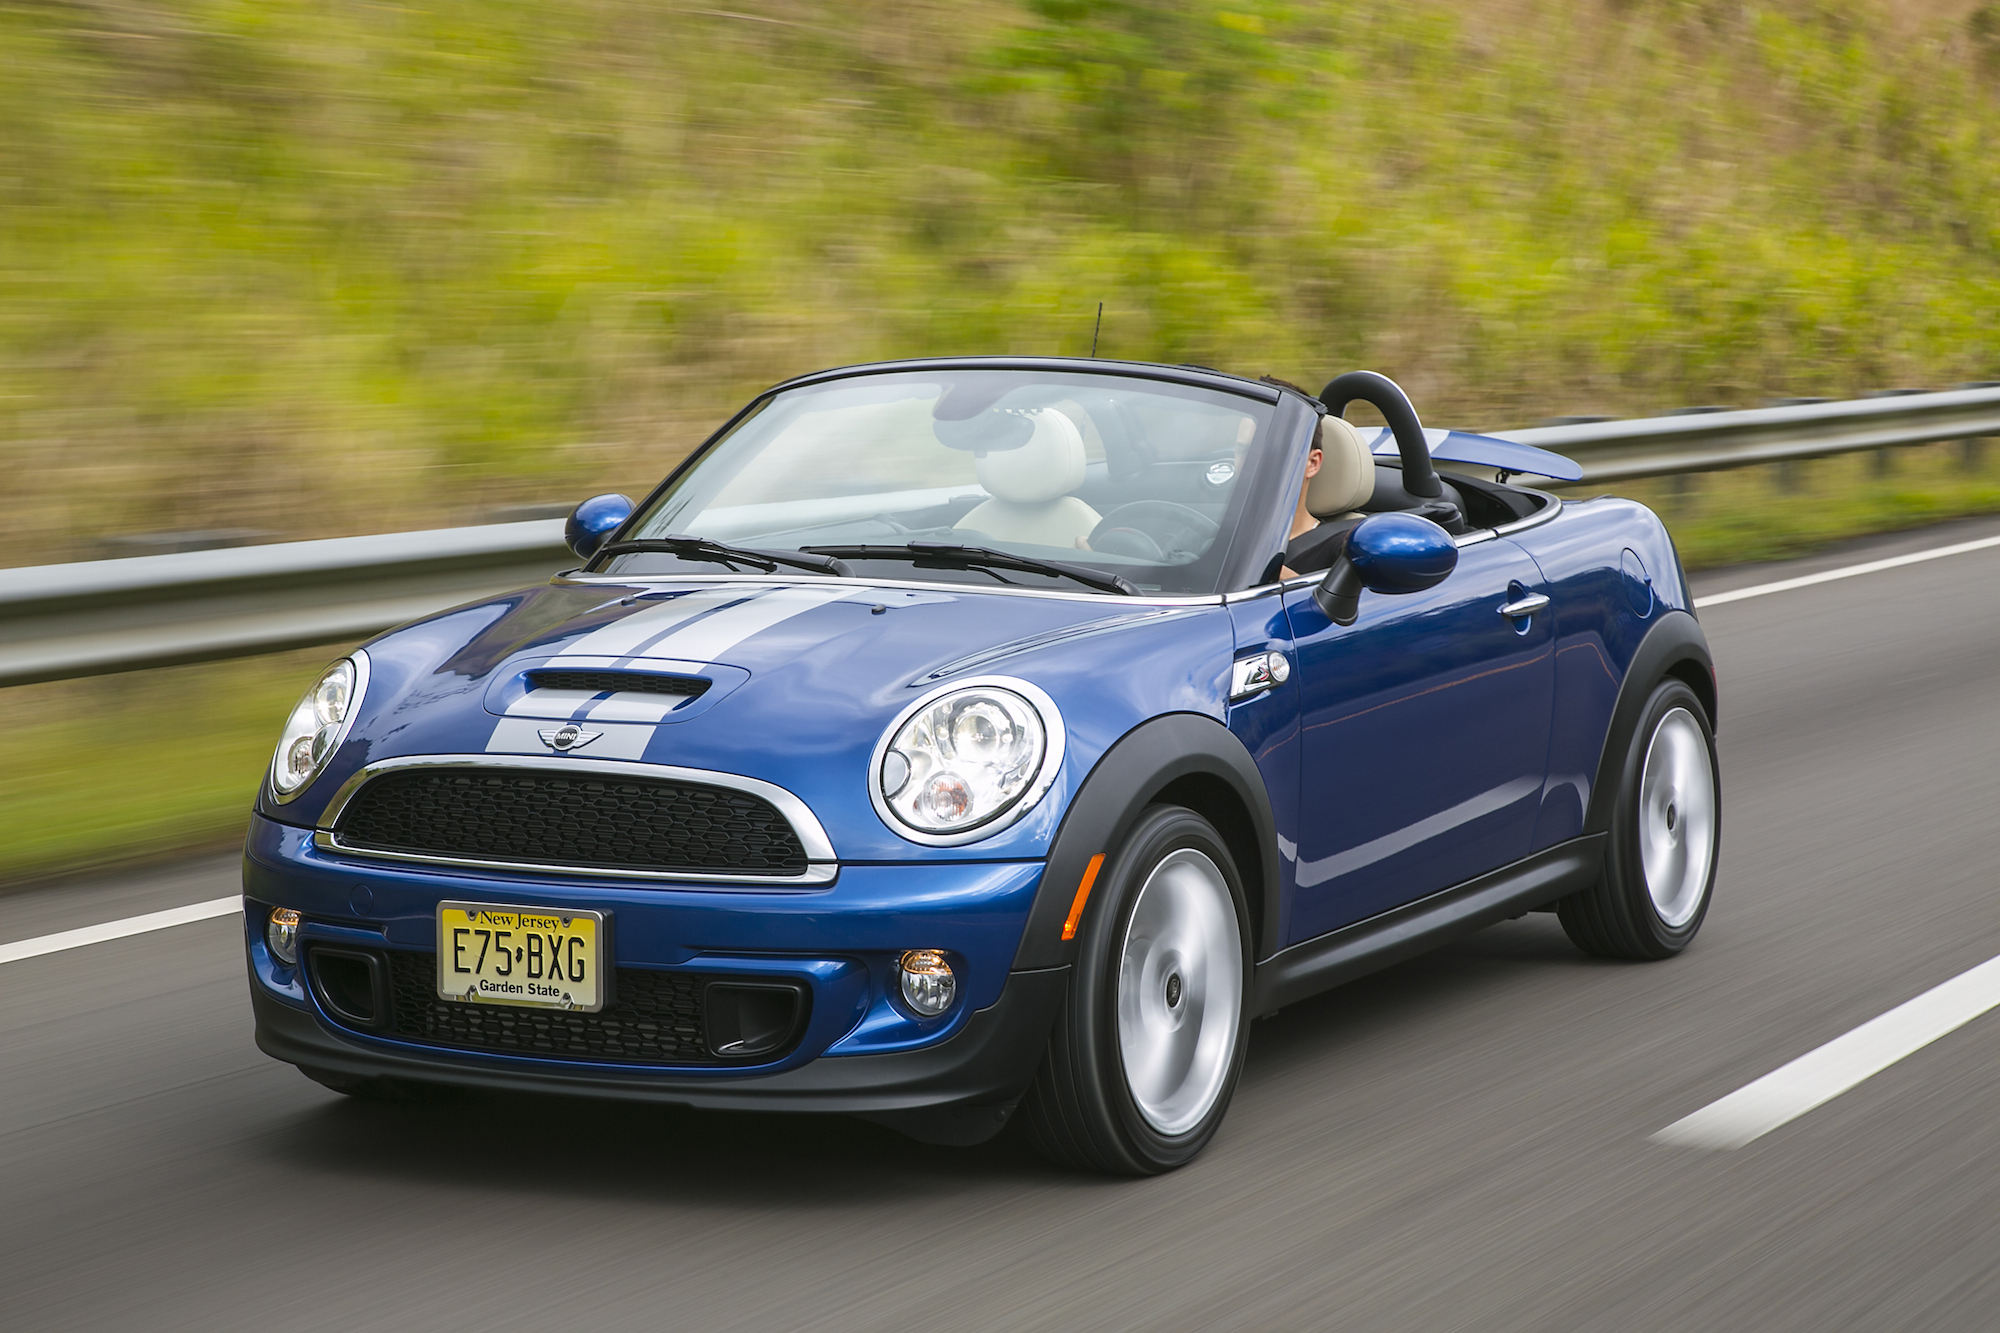 Mini Cooper Bmw >> Bmw Recalling Mini Coopers Over Steering Problems Fortune